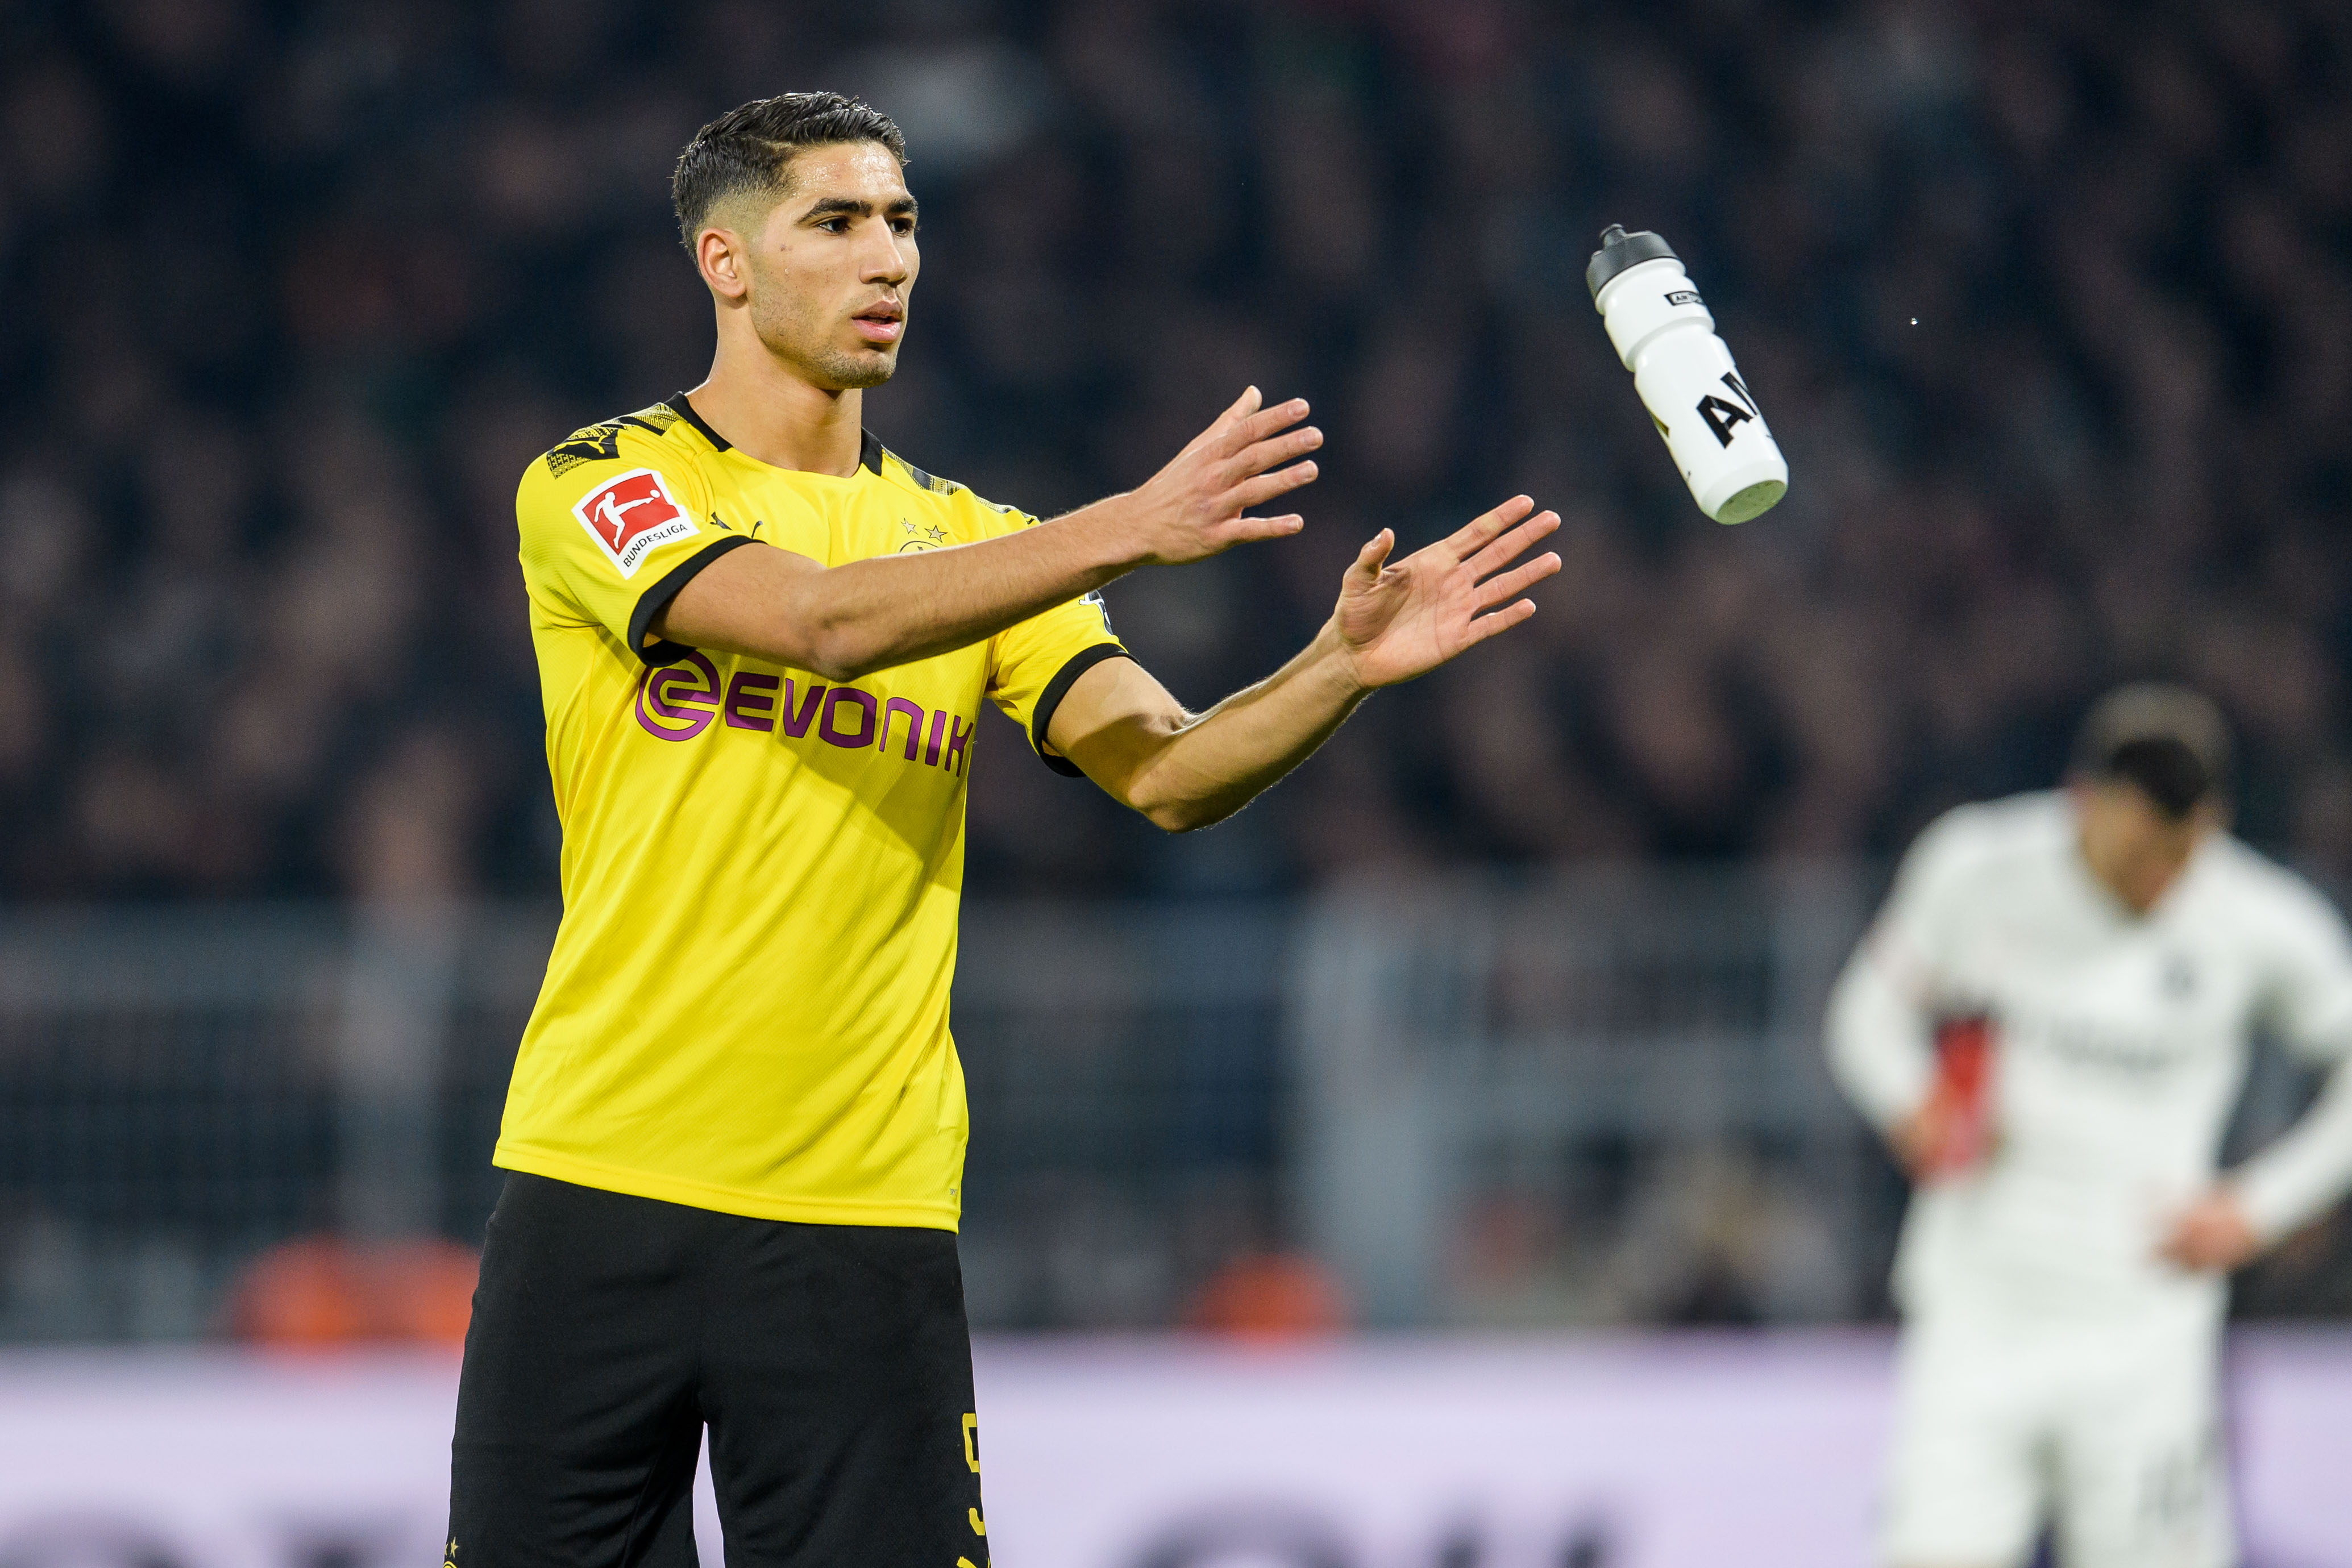 Manchester City keeping a keen aye on Achraf Hakimi who is seen in the photo